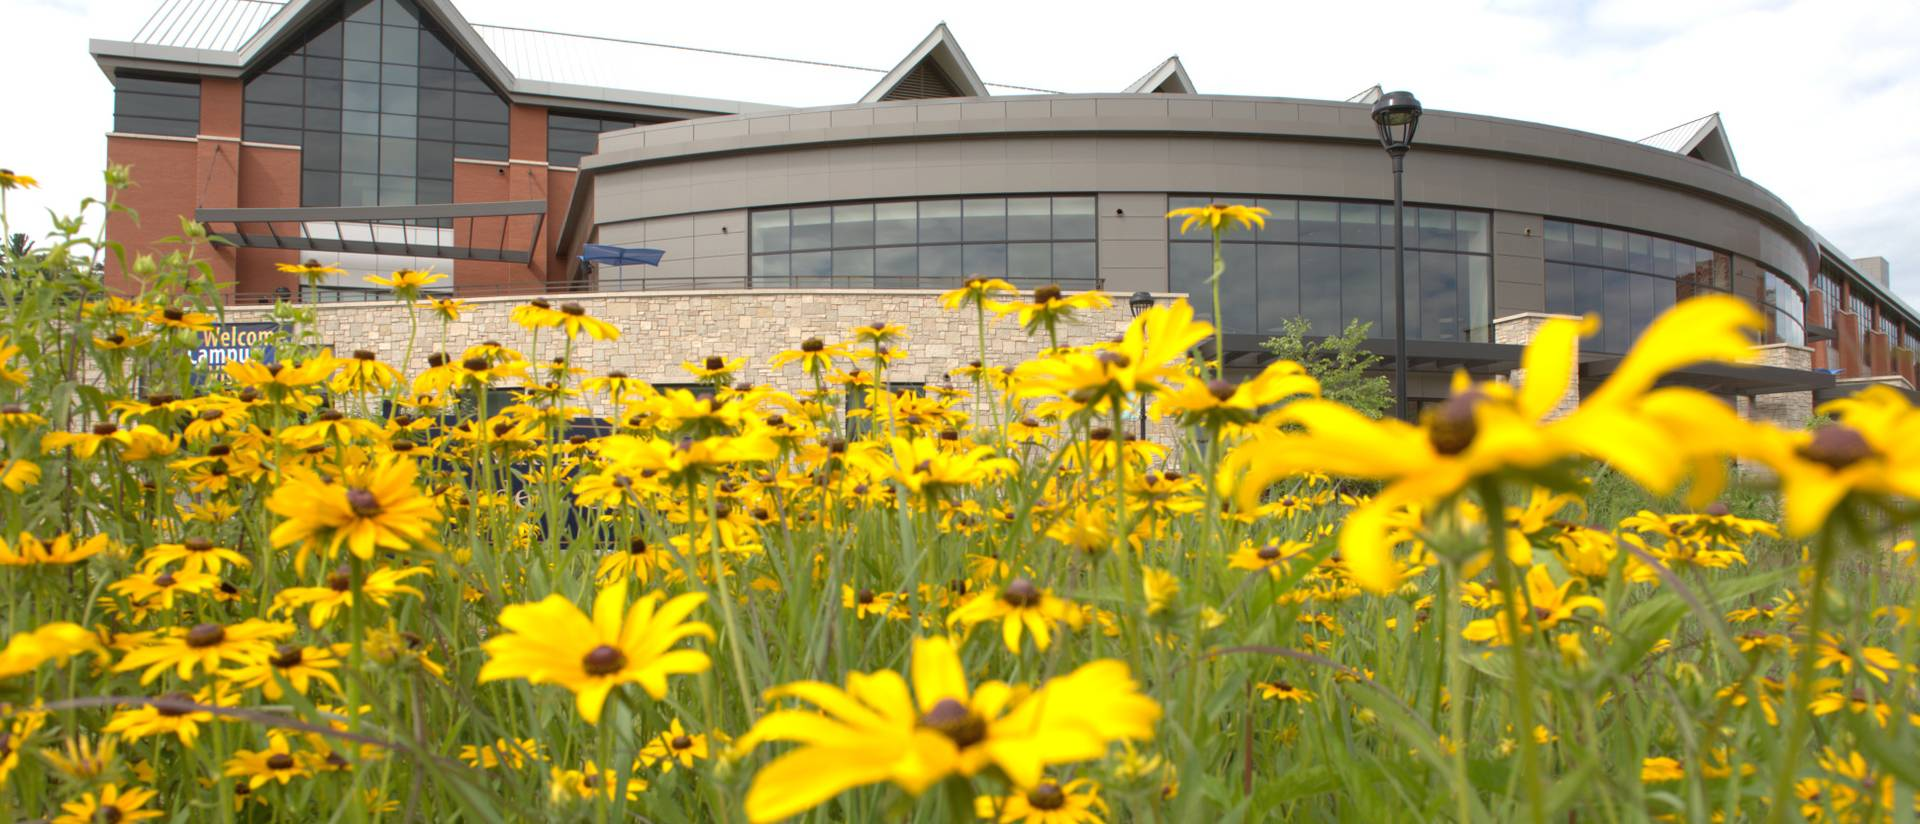 late summer flowers bloom with Davies Center as backdrop